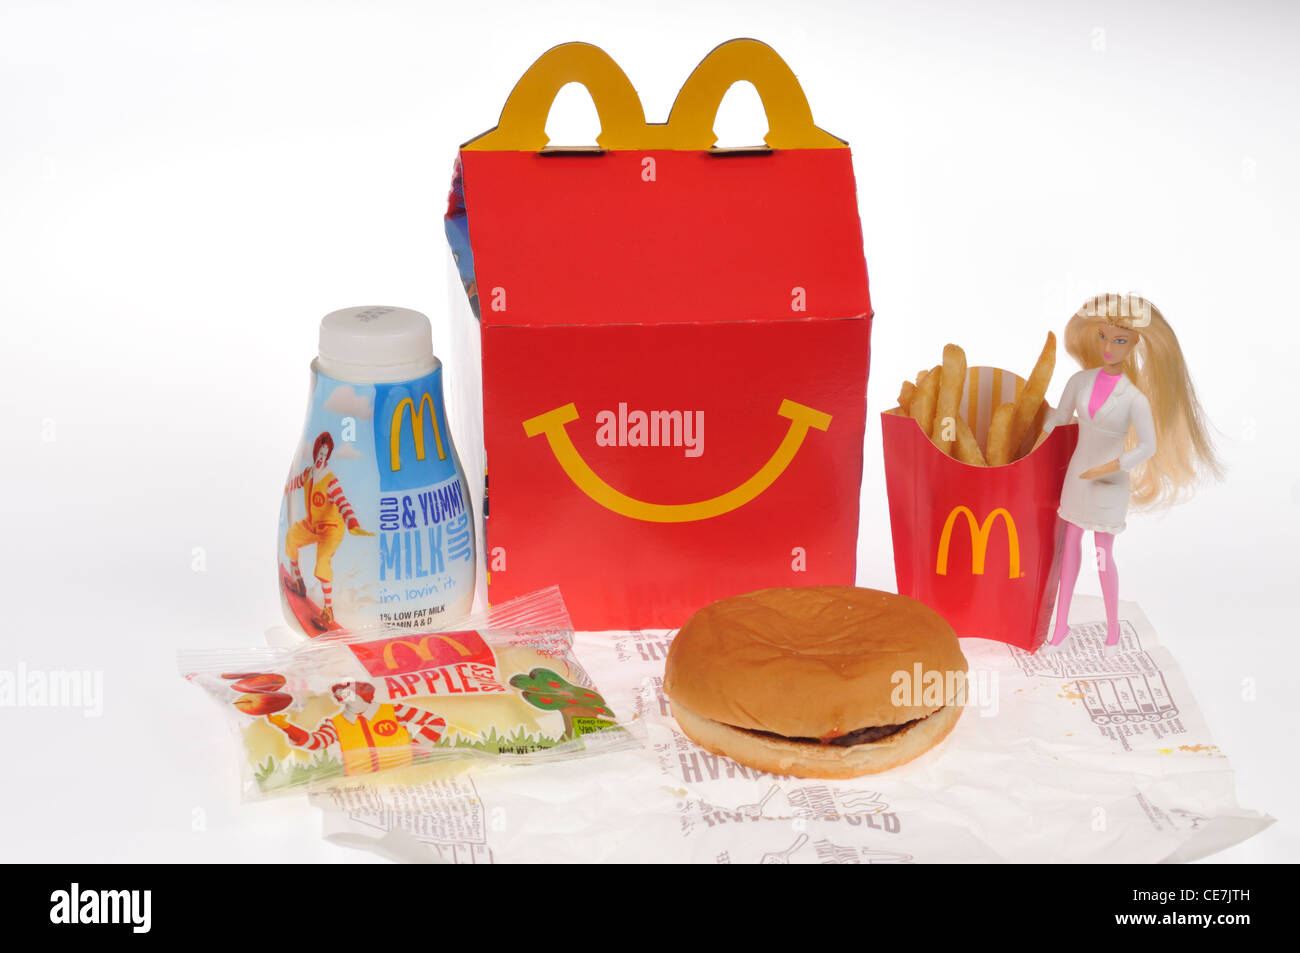 Favori McDonald's Happy meal box with a burger, chips, milk and apple  GD33